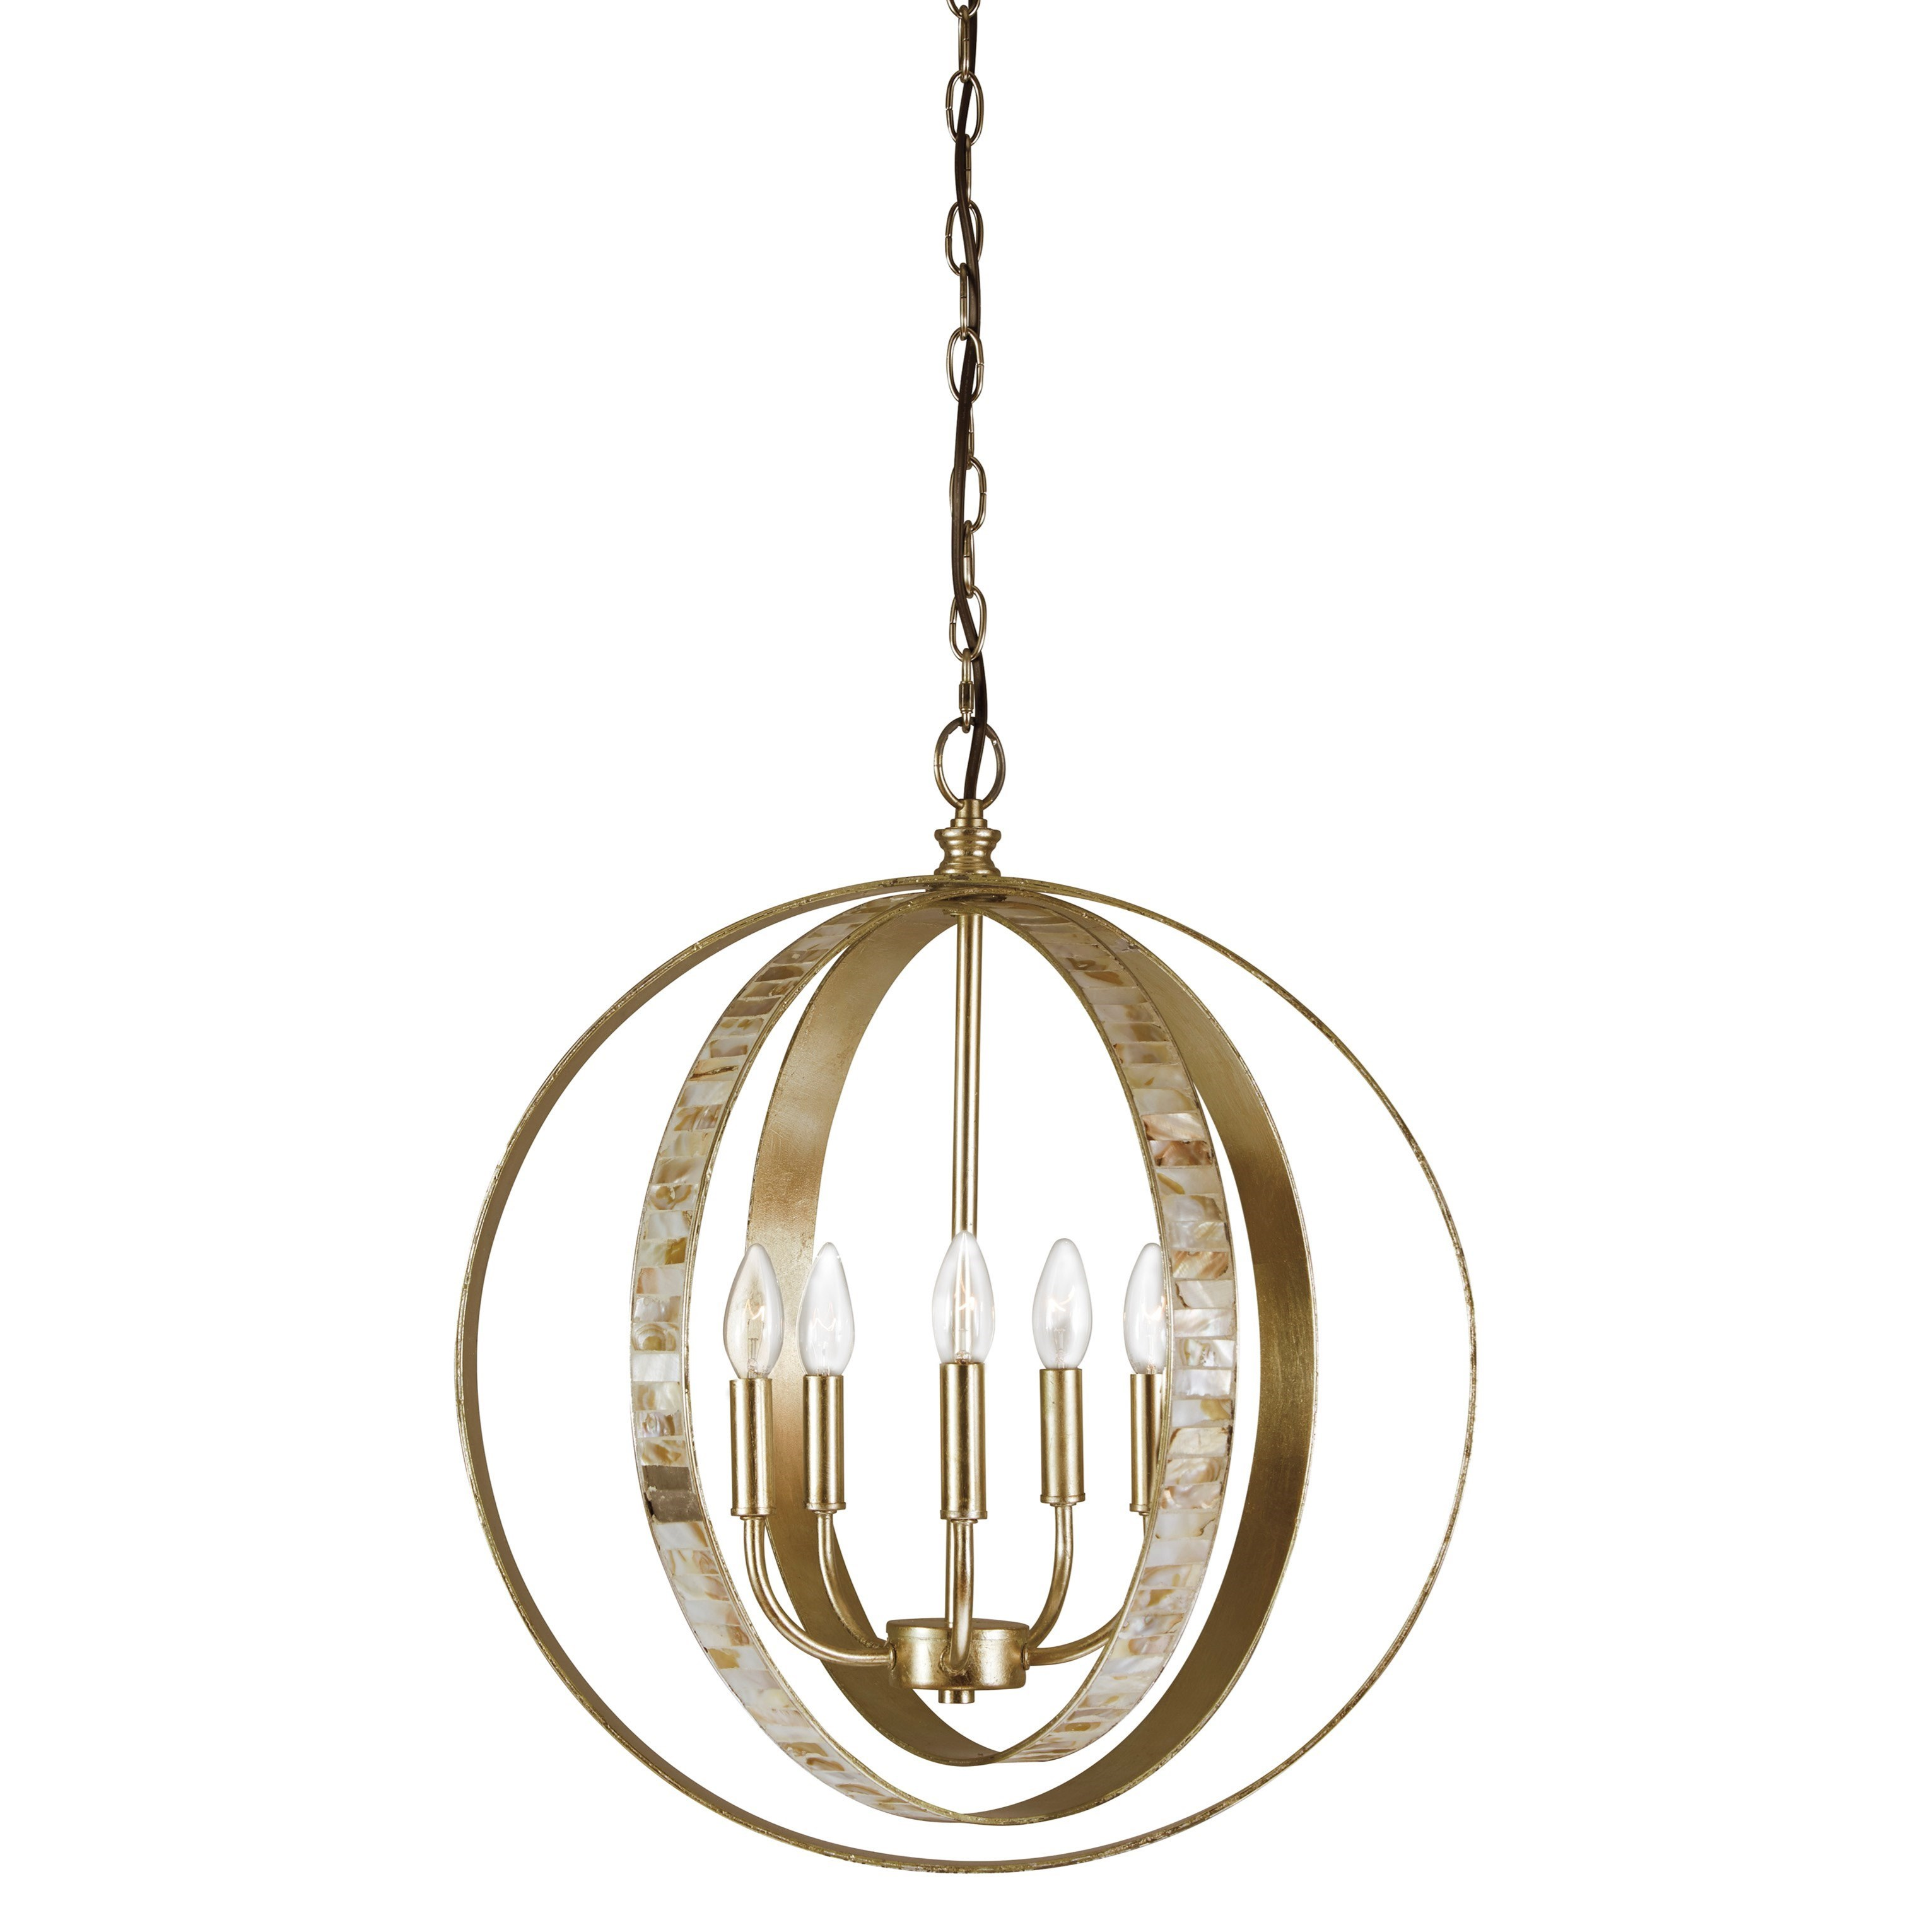 Signature Design by Ashley Pendant Lights Moshe Metal Silver Leaf Finish Pendant Light - Item Number: L000328